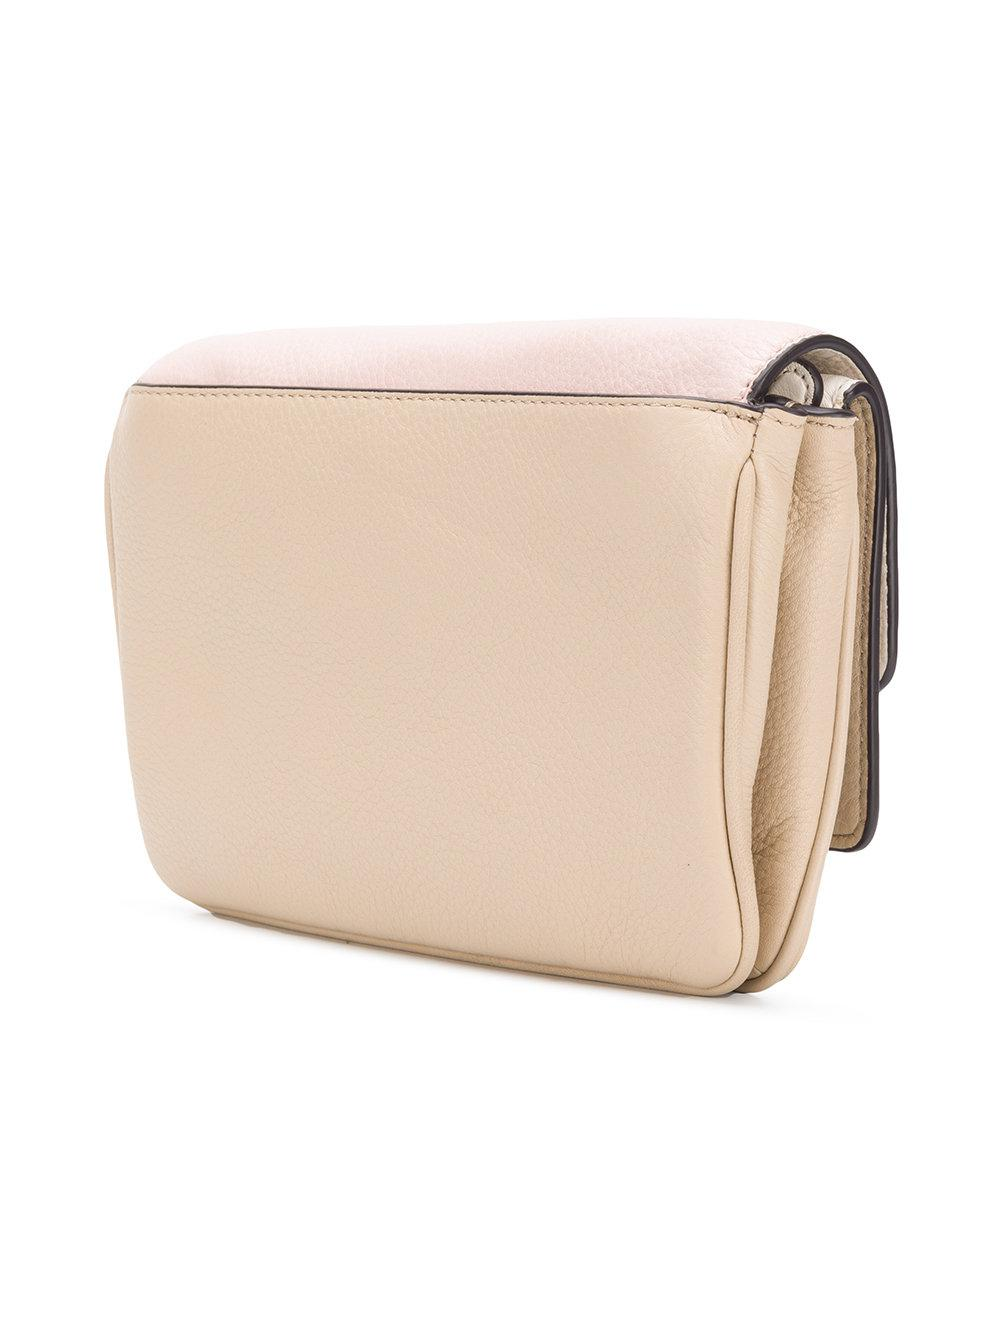 87e5b855b5cd Lyst - Michael Kors Triple Flap Crossbody Bag in Pink